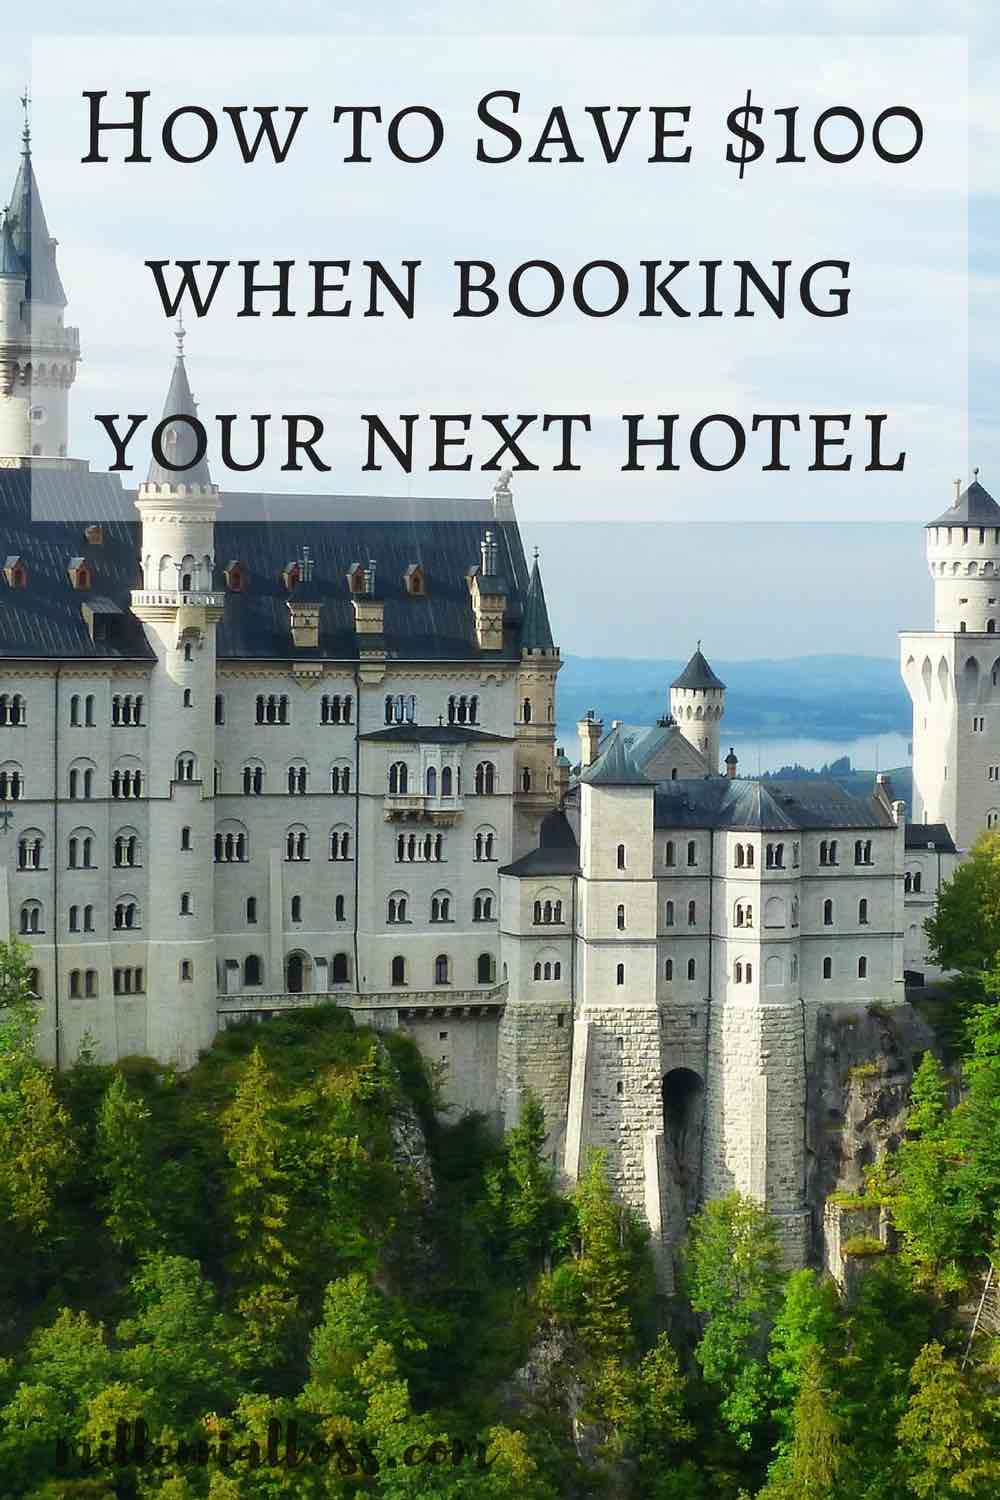 How to save money on hotels , Hotel promo codes, hotels.com code